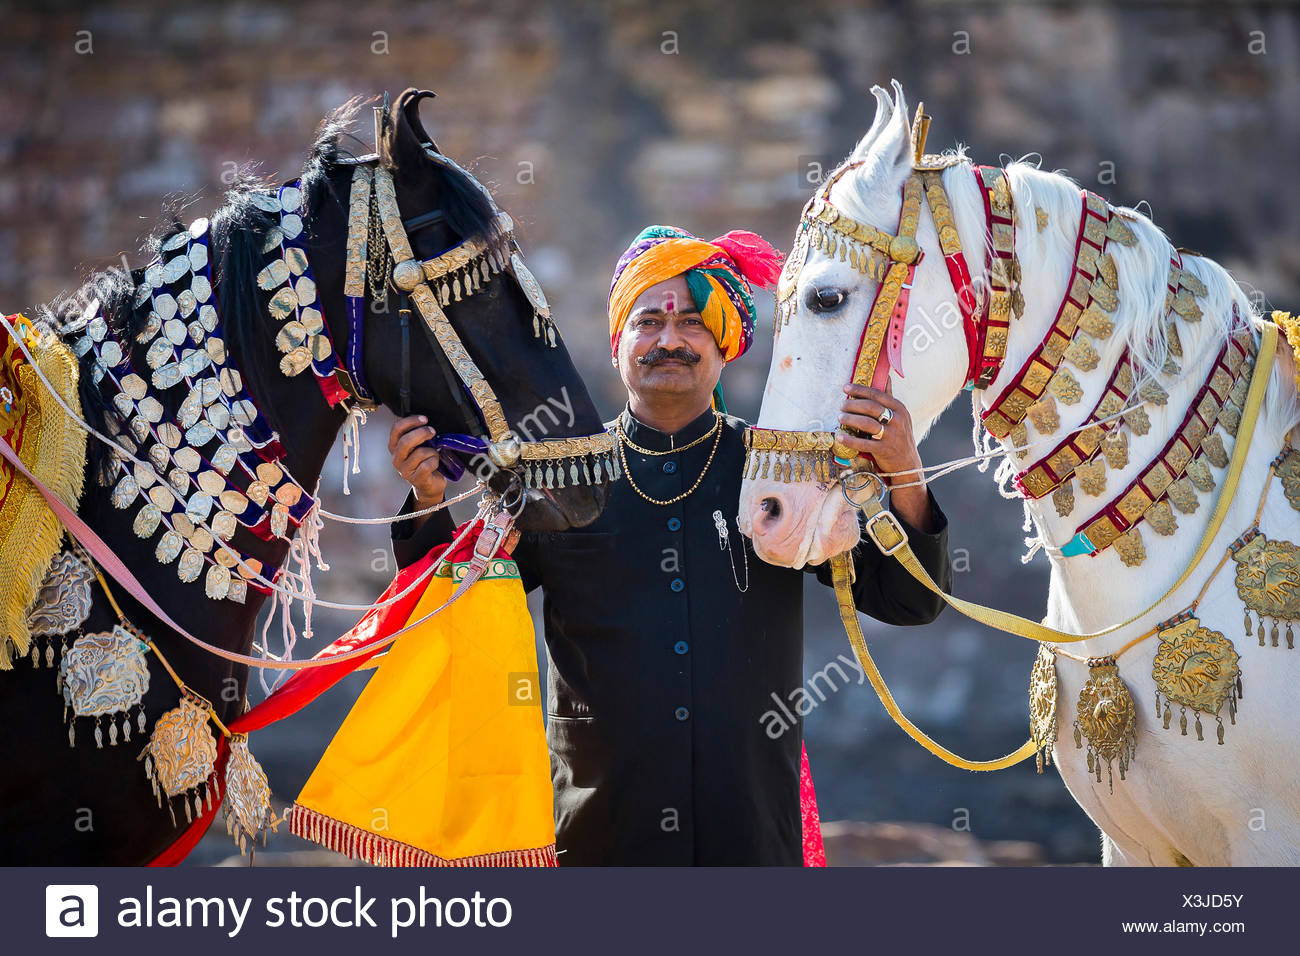 Marwari Horse. Pair of decorated dancing horses with proud owner. Rajasthan, India - Stock Image